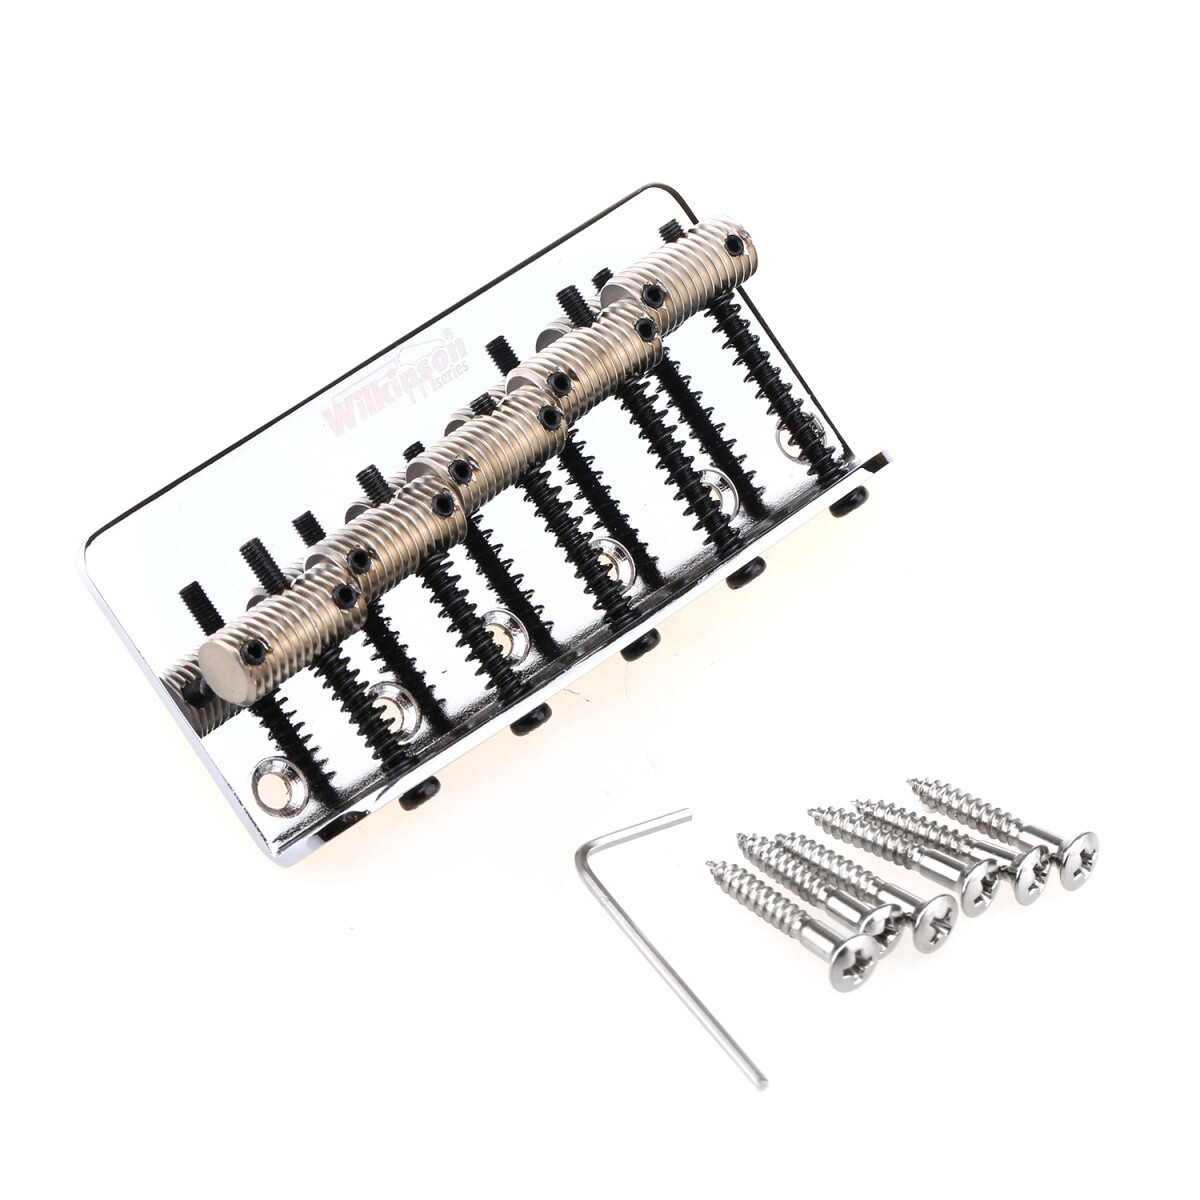 Wilkinson 76.2mm(3 inch) String Spacing 5-String Fixed Bass Bridge Threaded Saddles for Precison Bass and Jazz Bass, Chrome